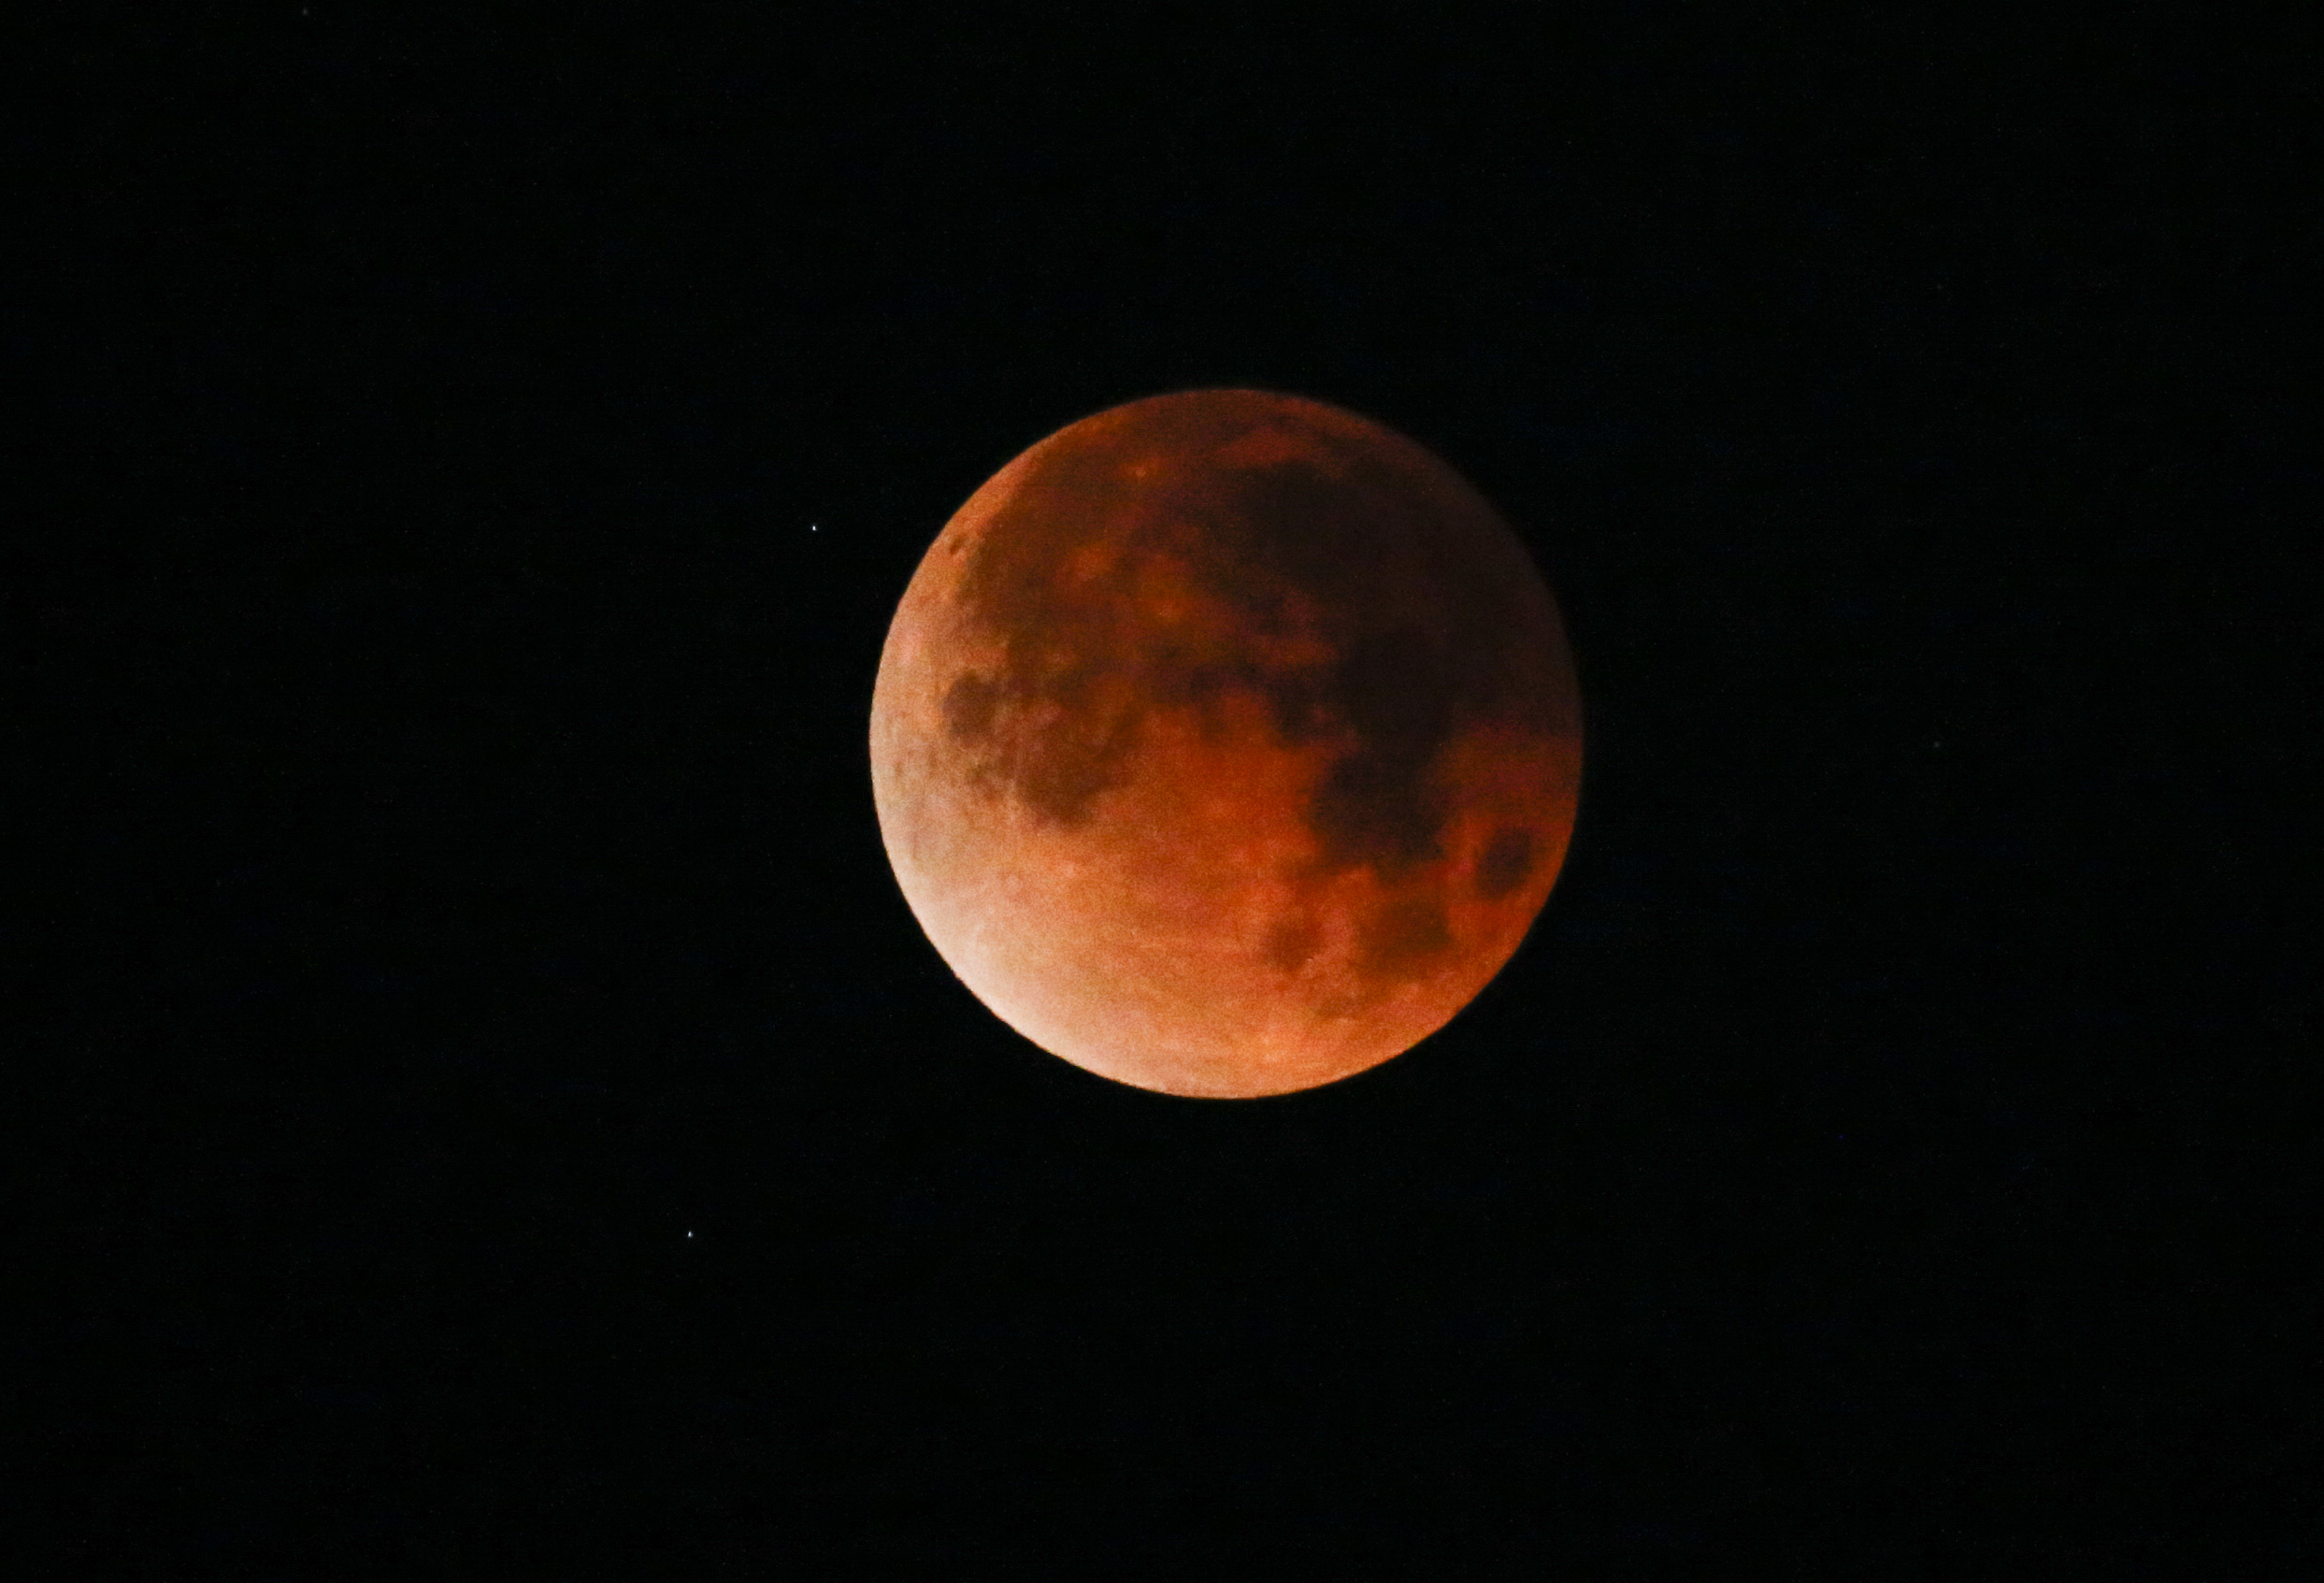 blood moon eclipse ireland - photo #6